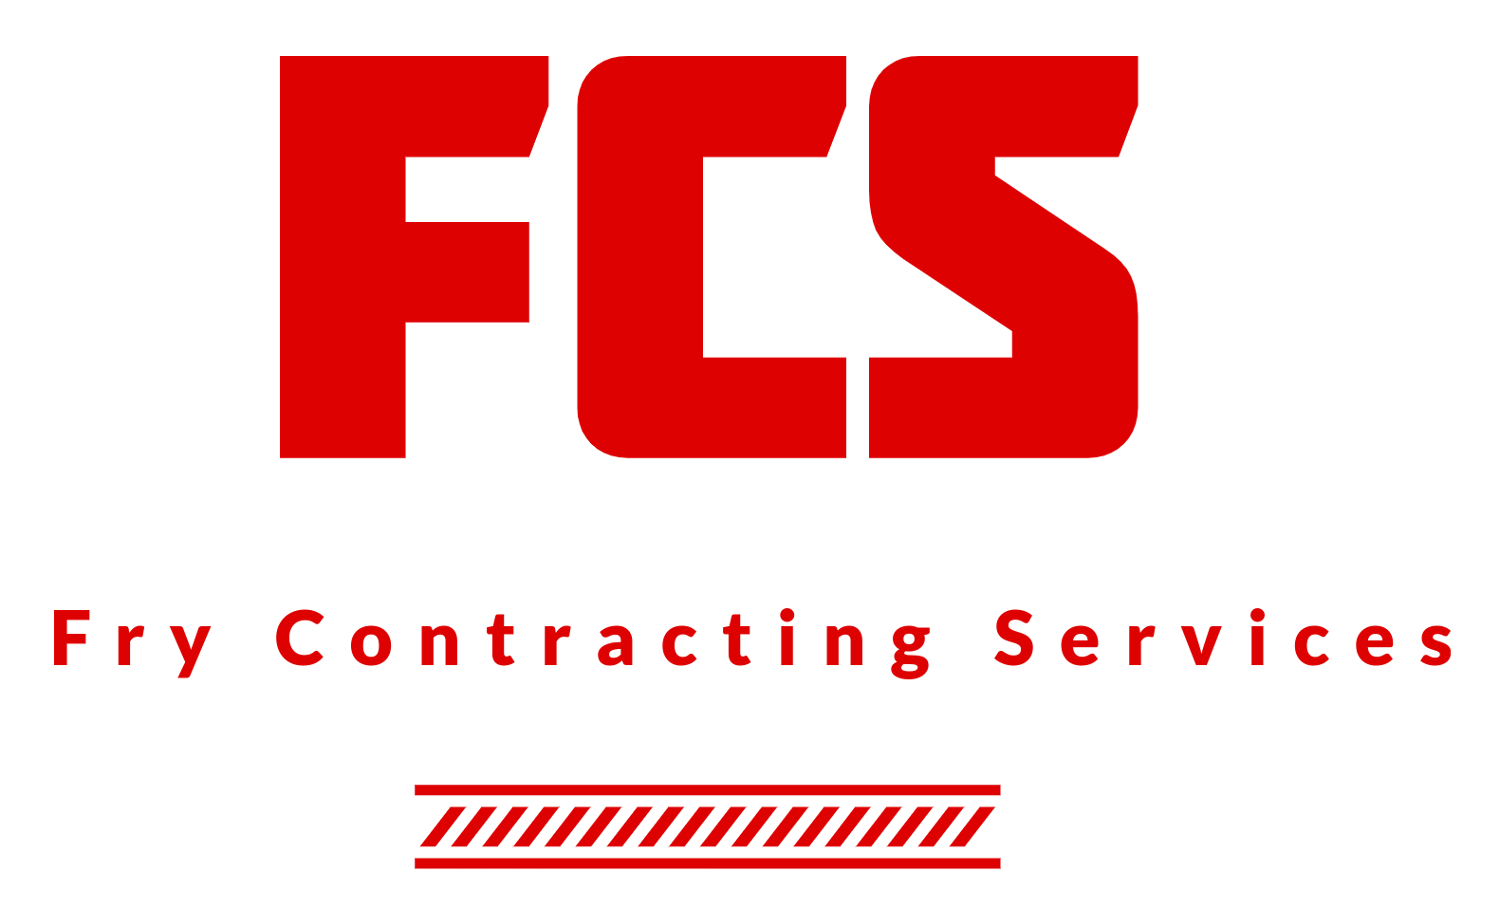 Fry Contracting Services image